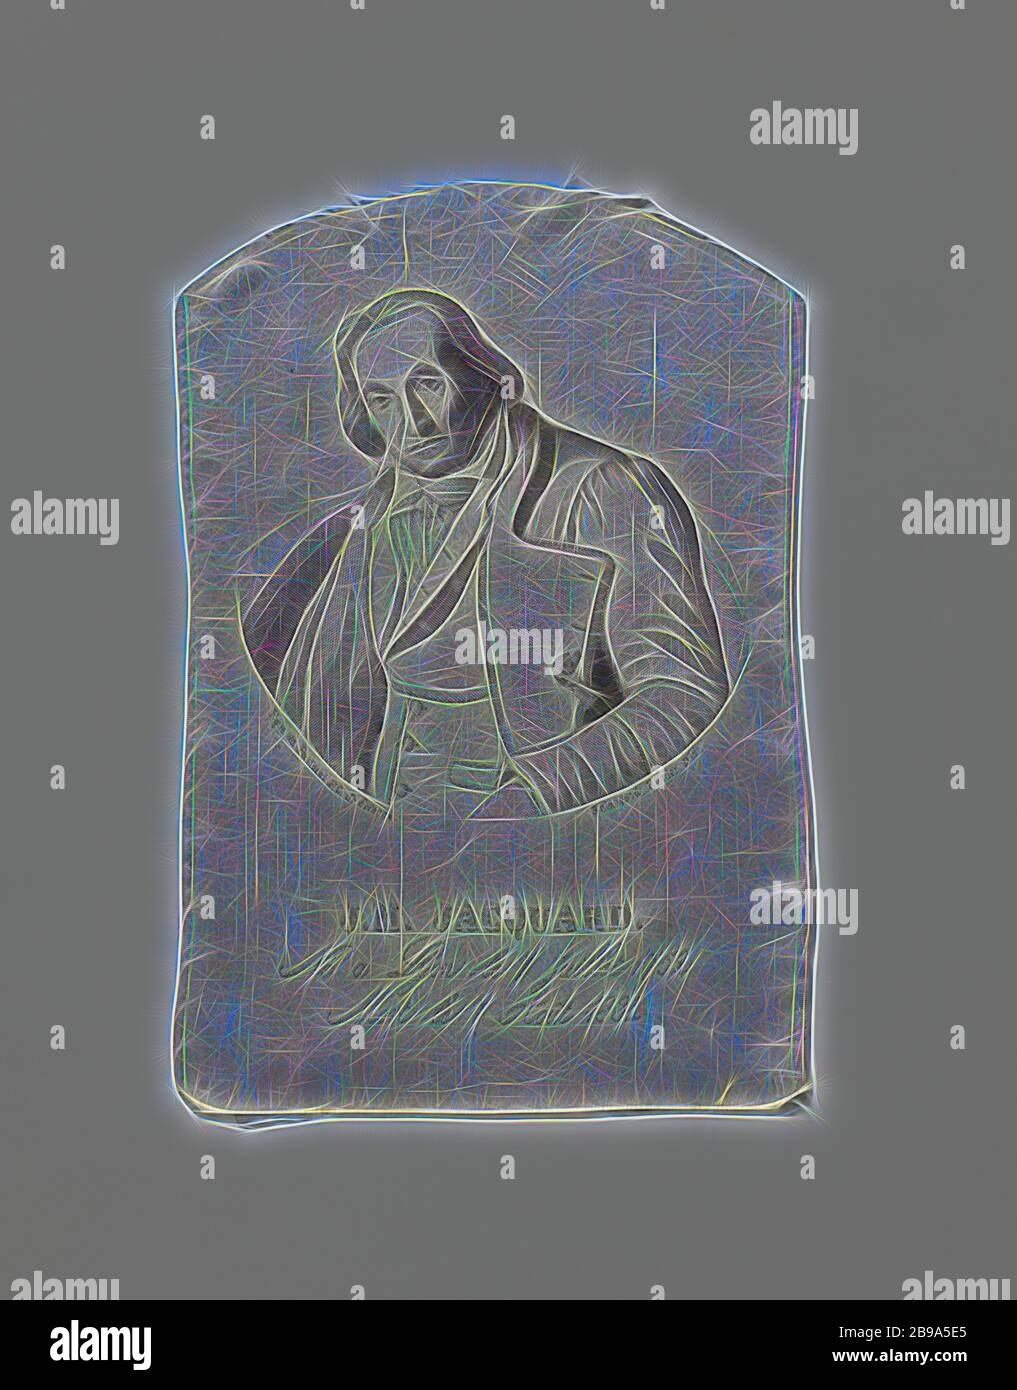 Fragment of a silk fabric with a portrait and inscription, A gray silk fabric with a portrait of J.M. Jaquard and an inscription: 'Né à Lyon le 7 millet 1752. Mort le 7 tout 1834., anonymous, 1835, silk, lampas (textile material), h 17.5 cm × w 11.7 cm, Reimagined by Gibon, design of warm cheerful glowing of brightness and light rays radiance. Classic art reinvented with a modern twist. Photography inspired by futurism, embracing dynamic energy of modern technology, movement, speed and revolutionize culture. Stock Photo